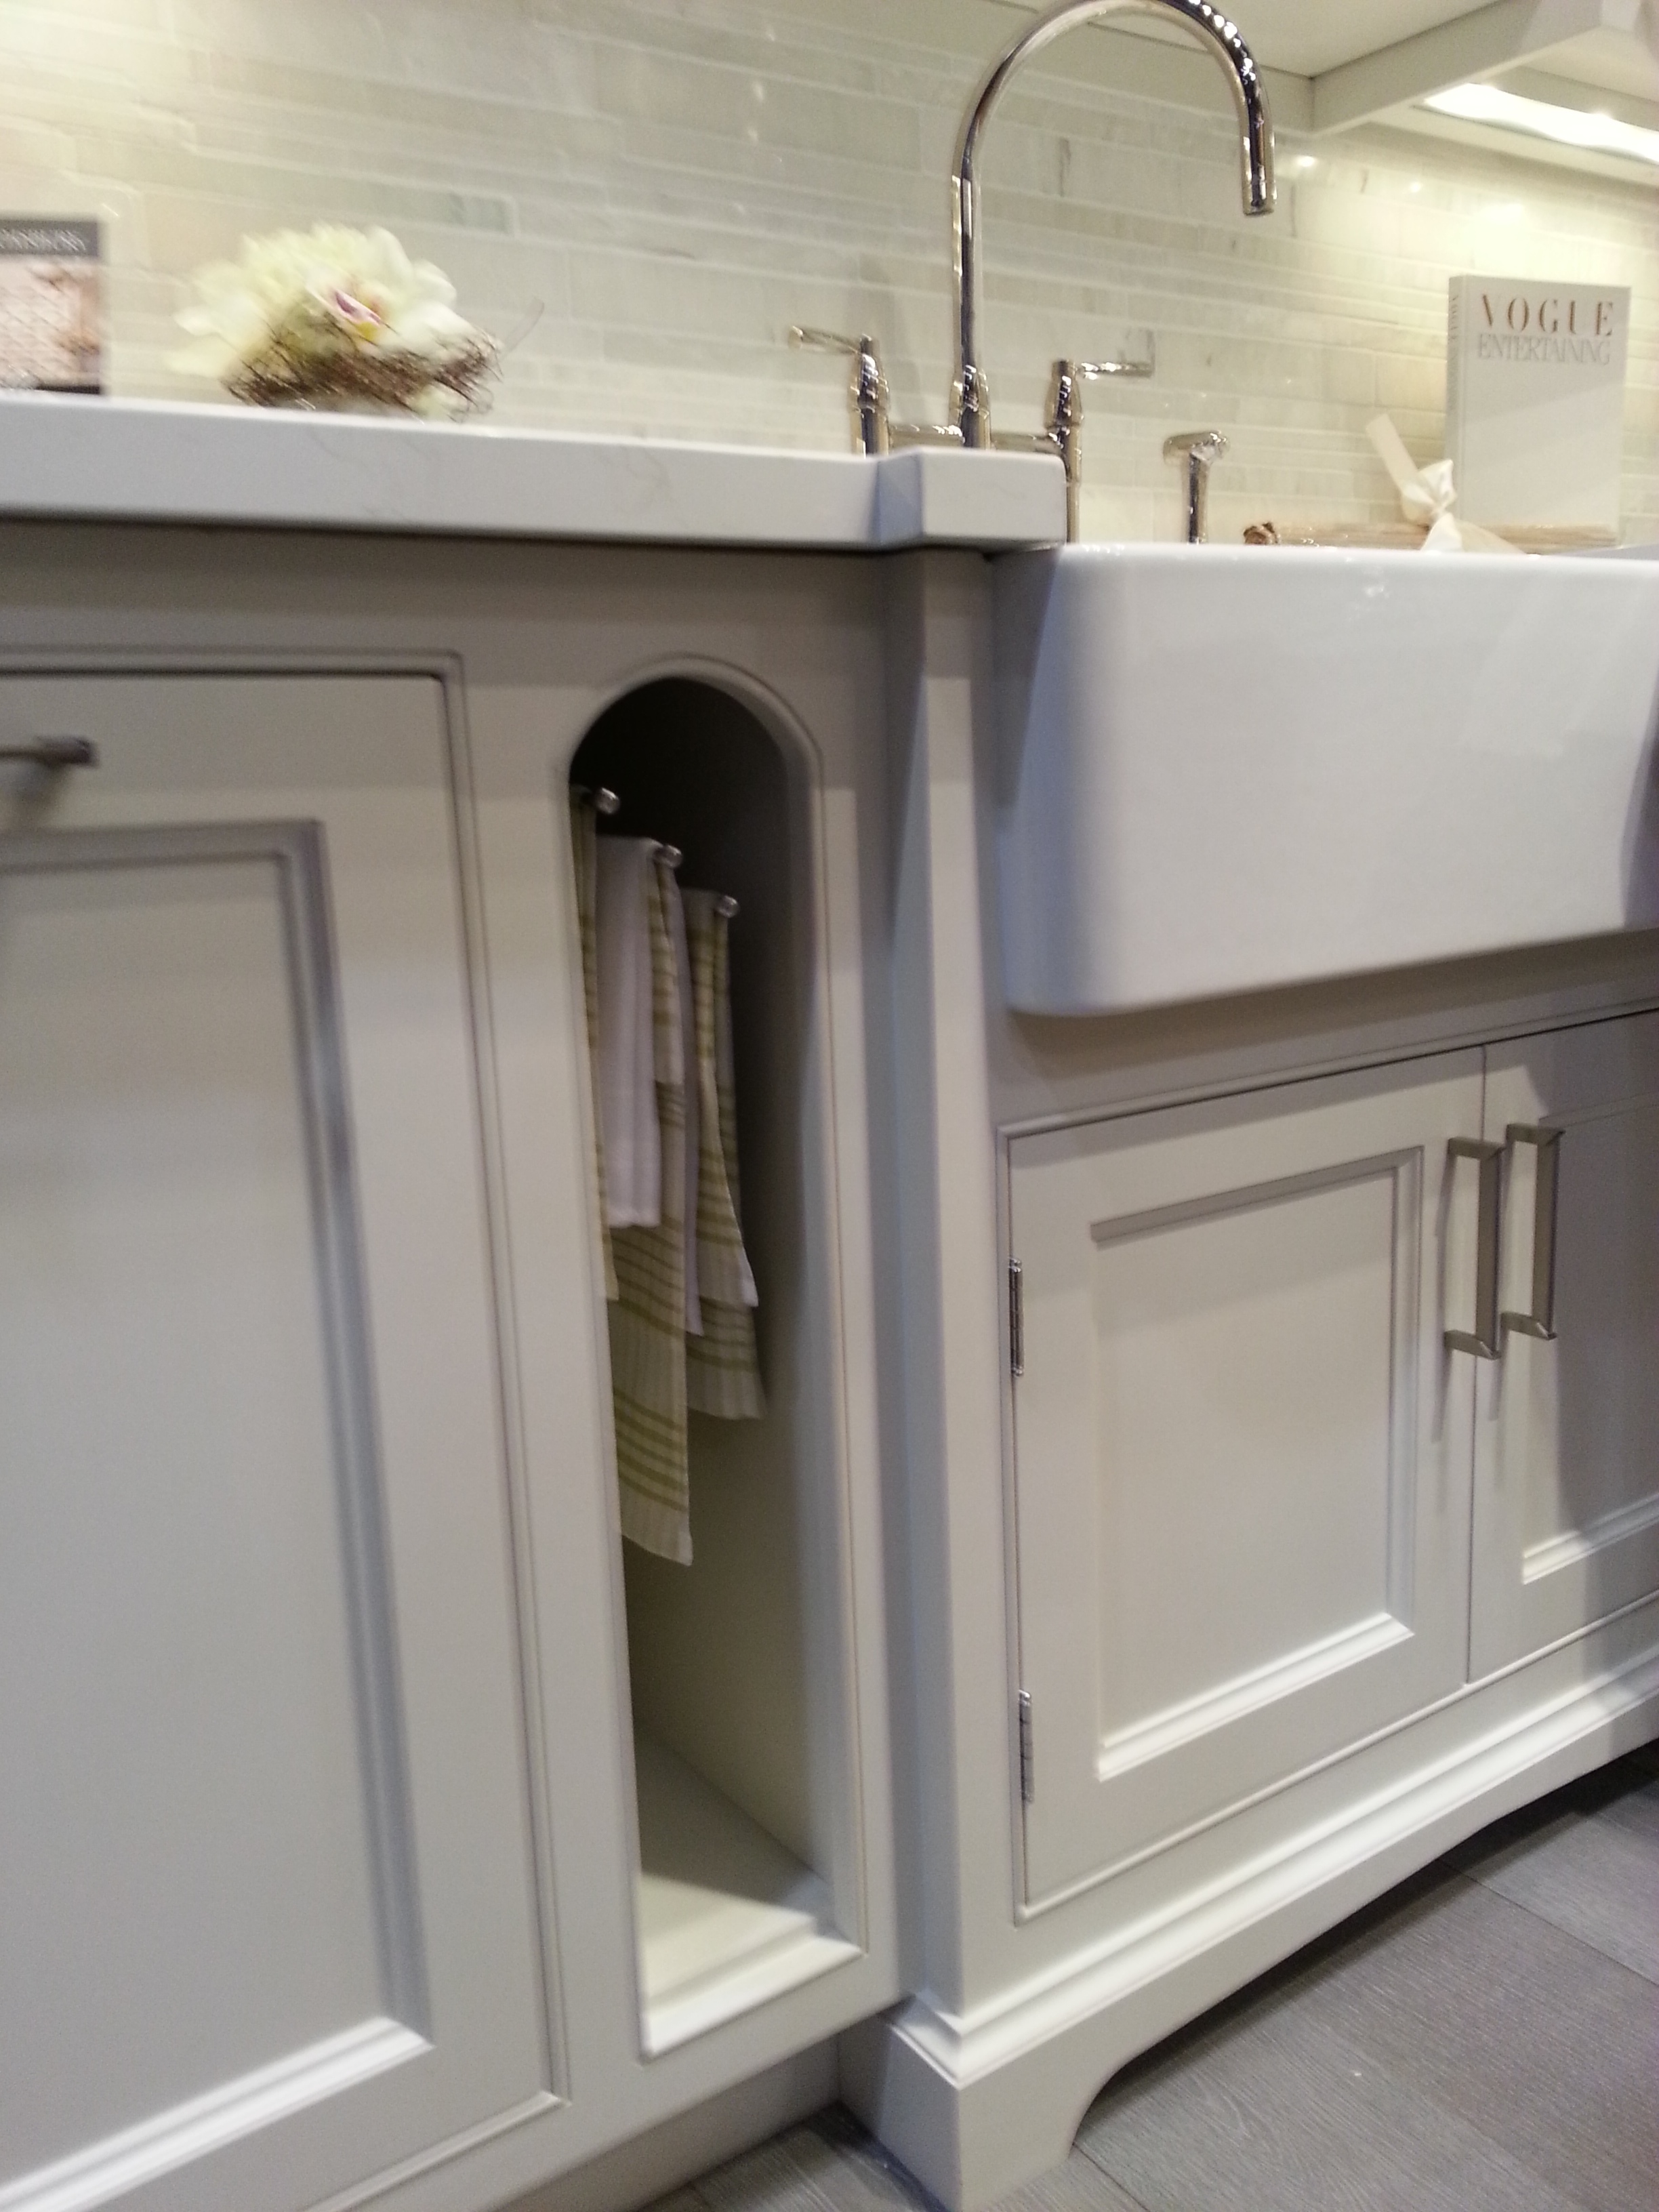 hardware on kitchen cabinets remodel design cost barnboard floors | my mid-life reno